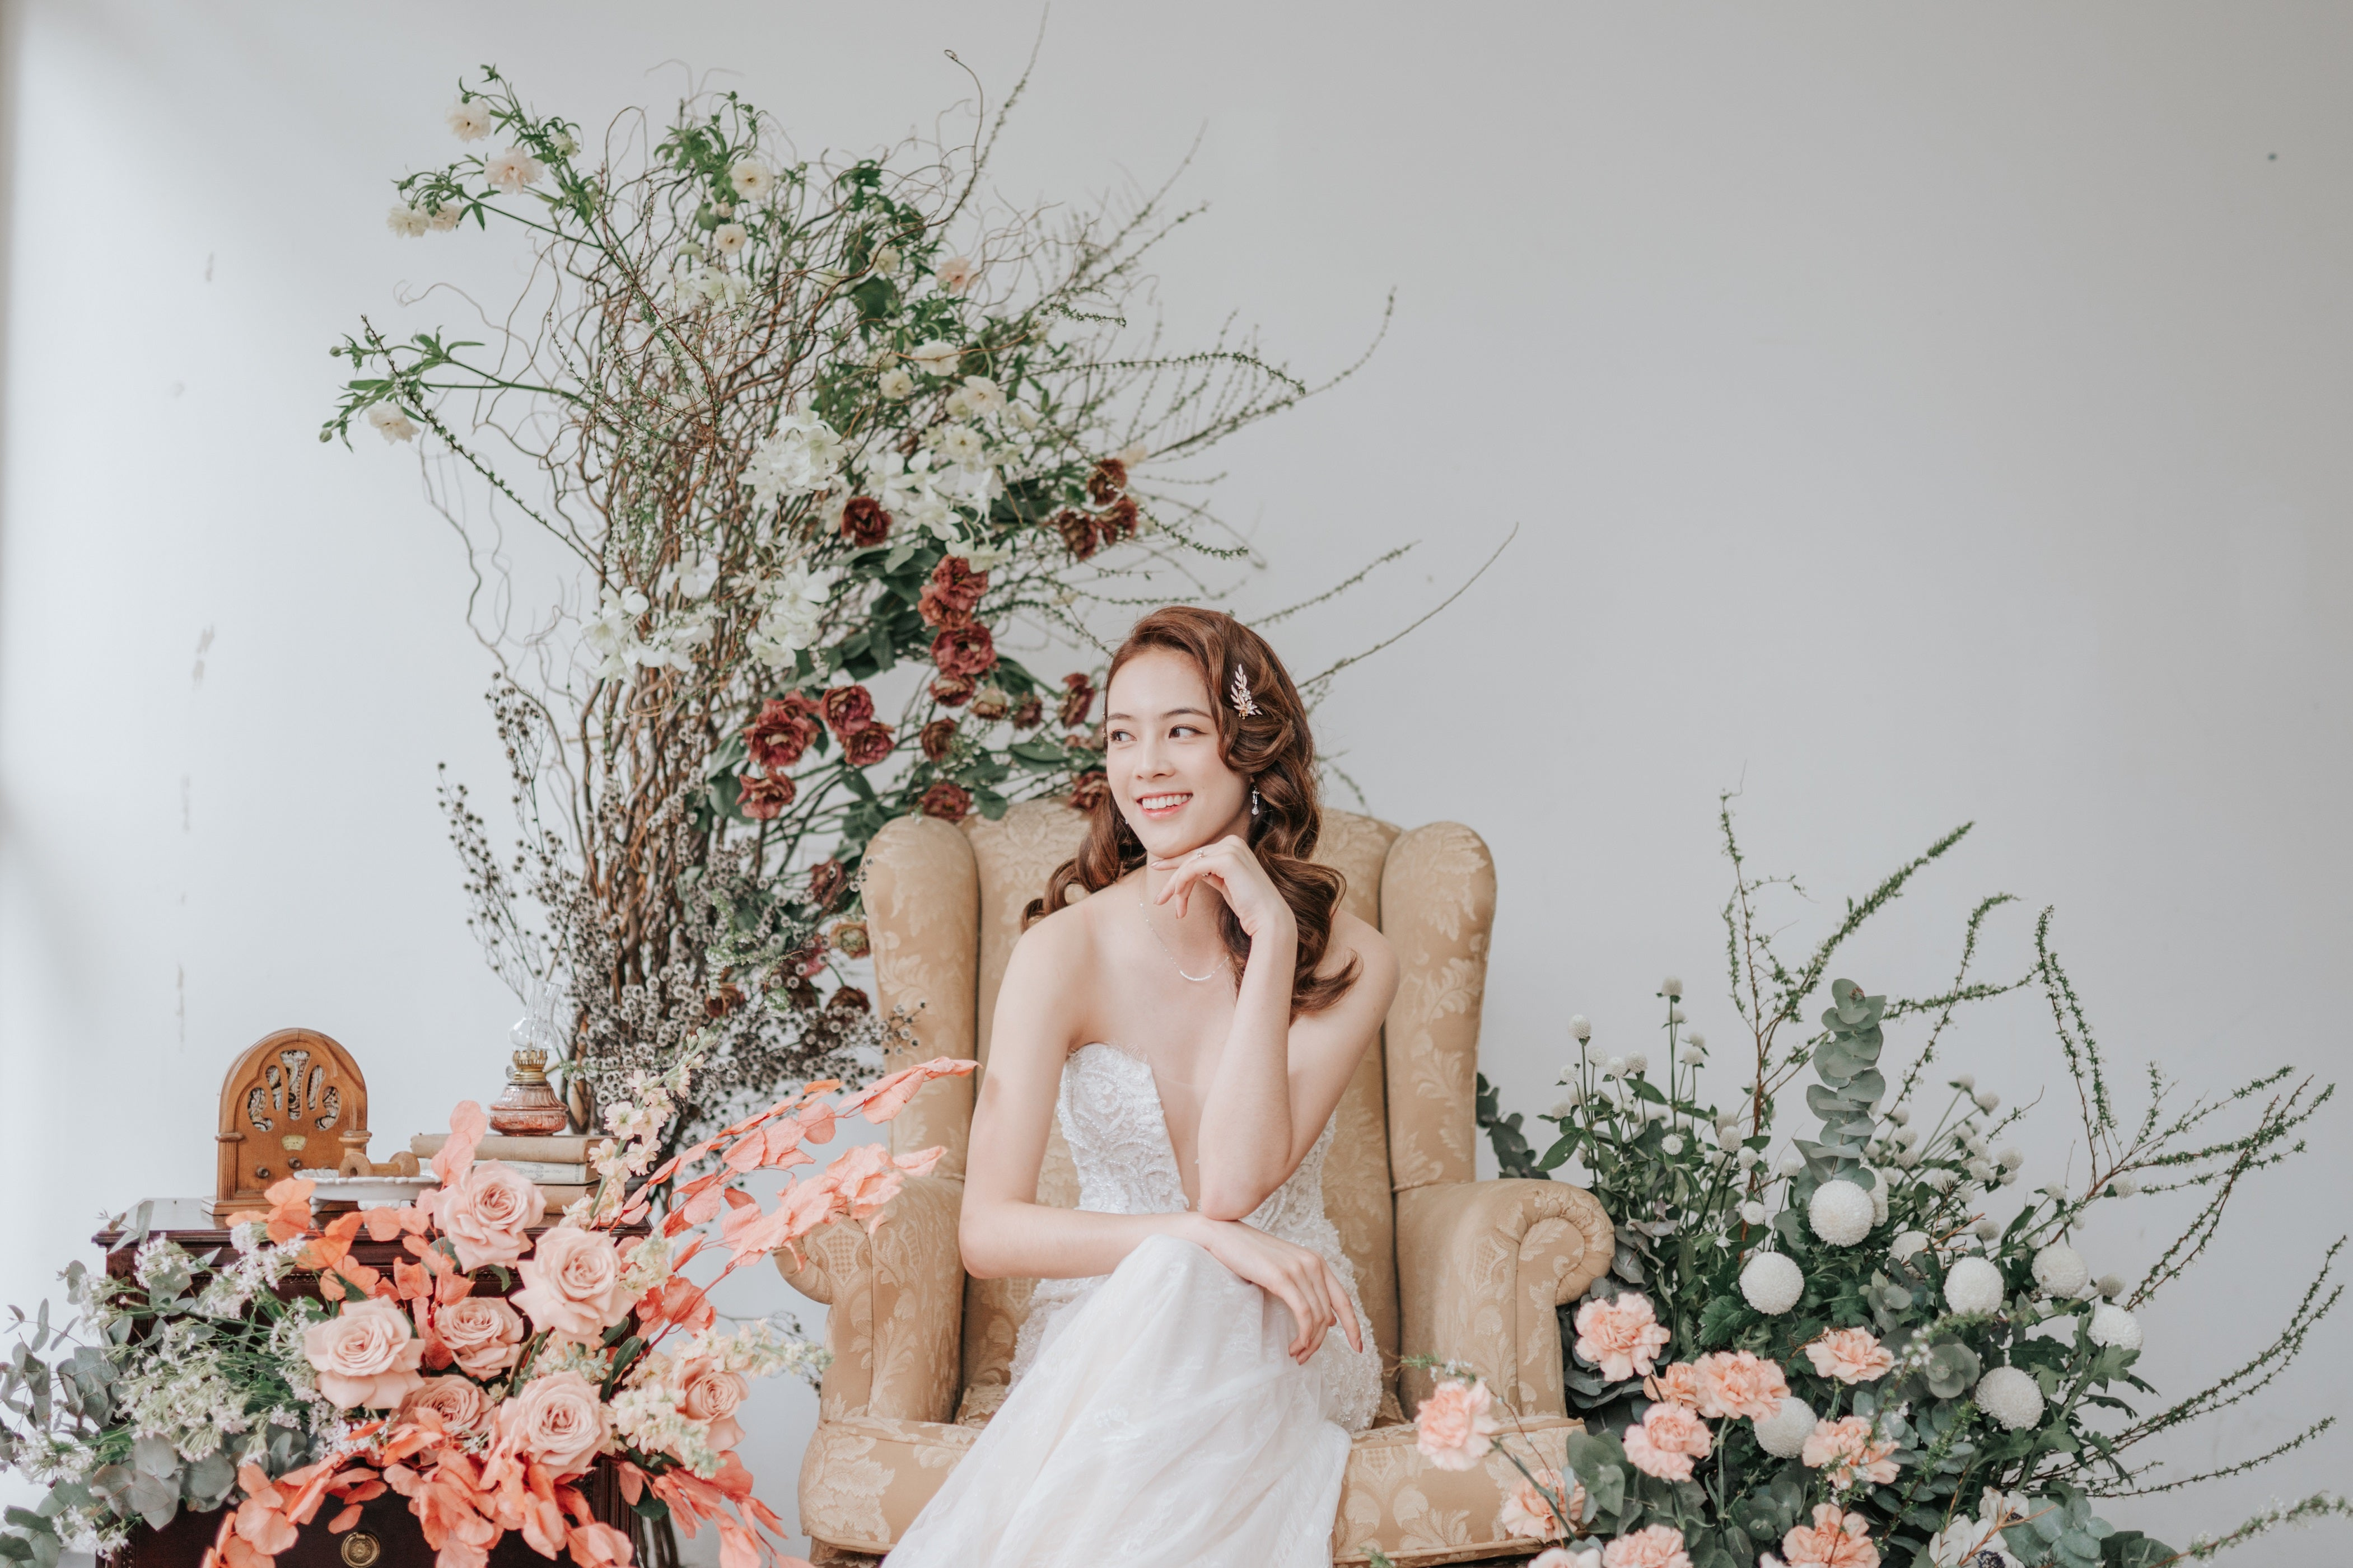 Bride looking sideways, smiling, seated on gold armchair surrounded by arranged flower installation